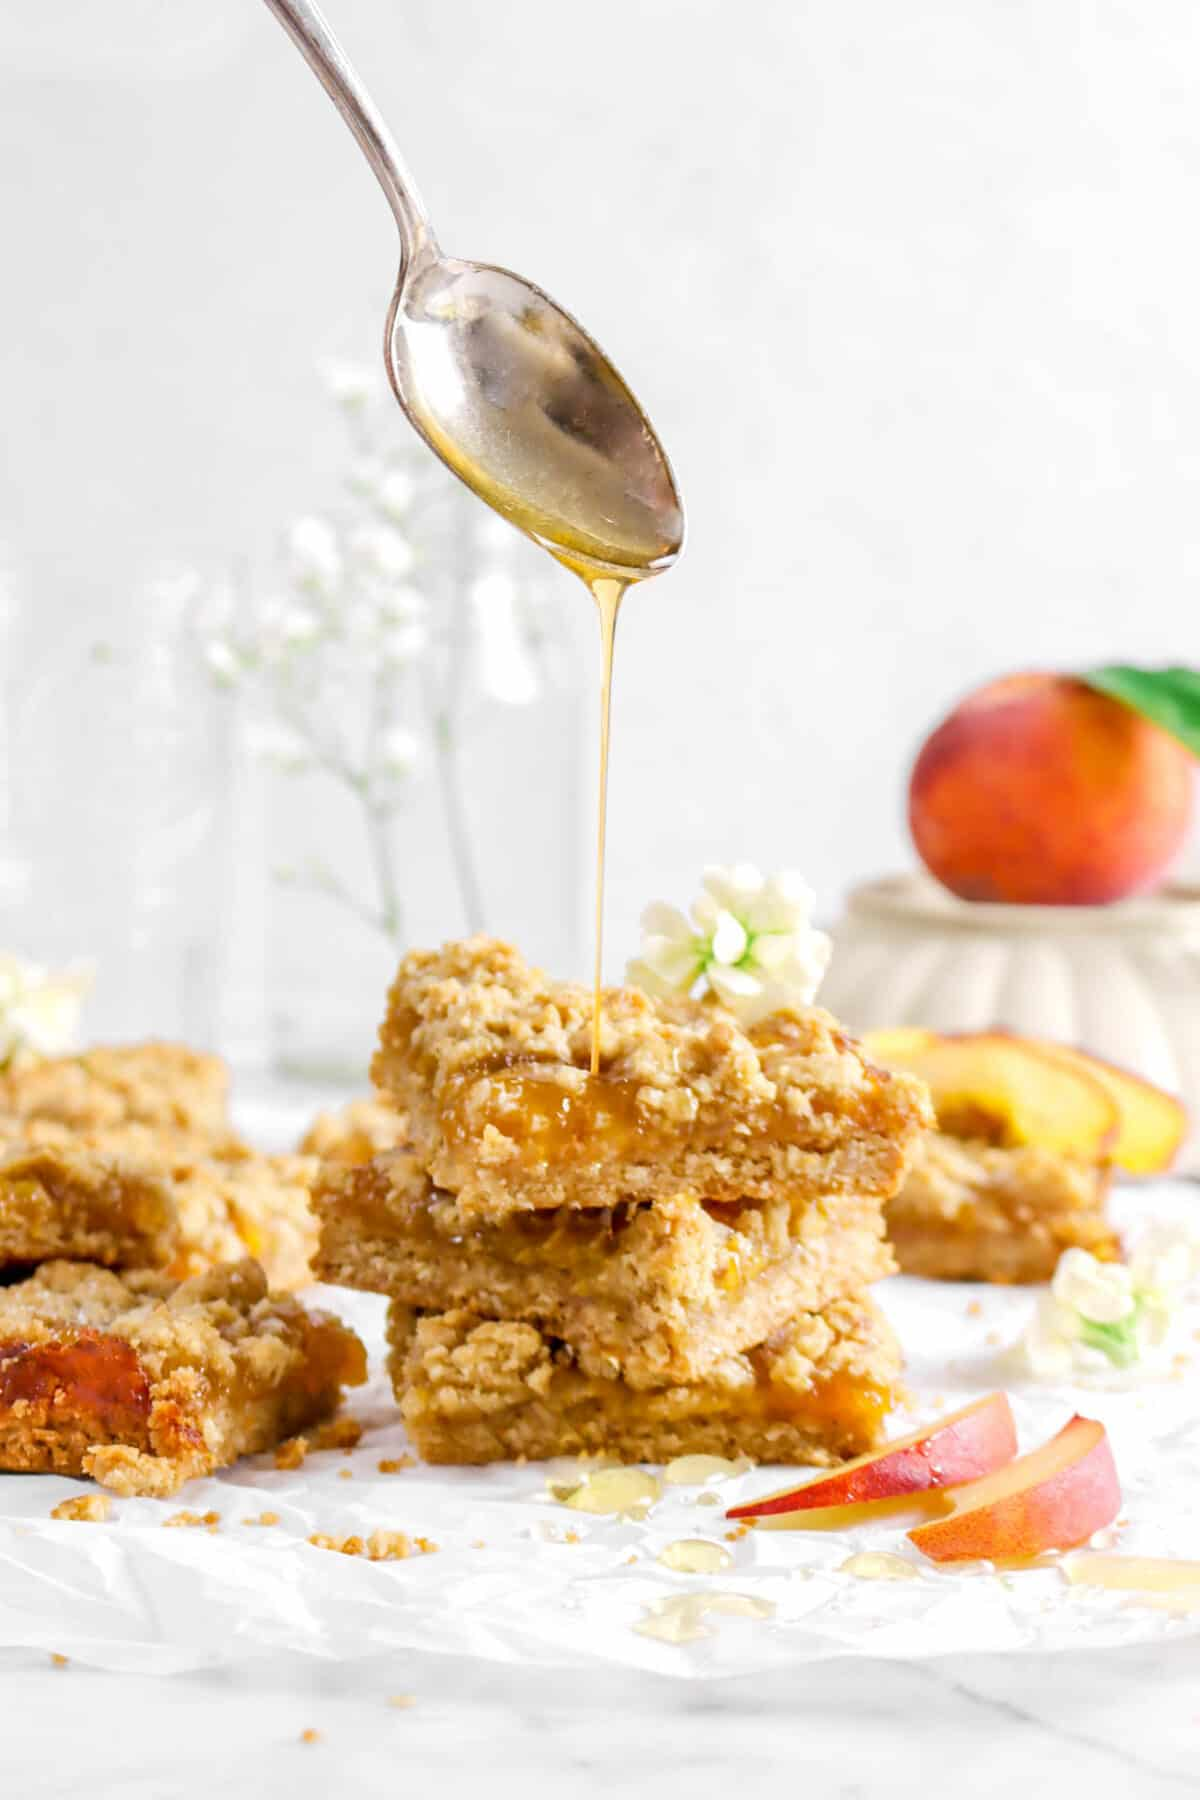 honey being poured onto stacked crumble bars